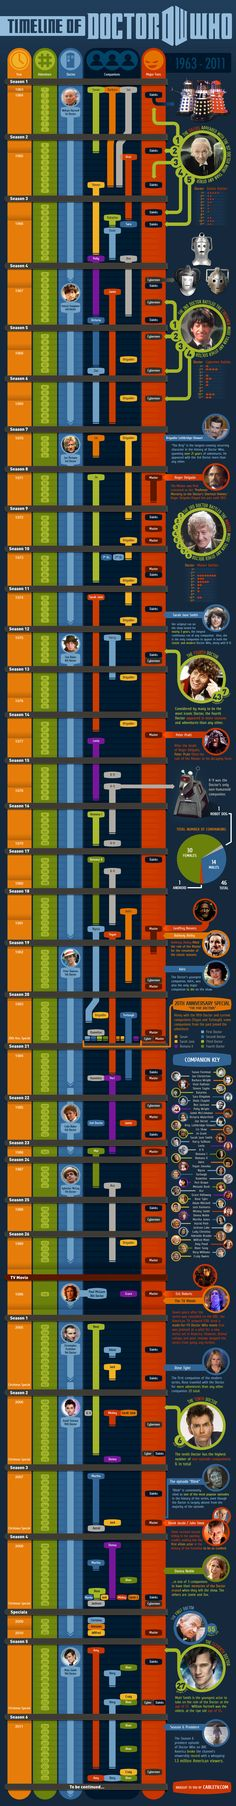 Time Lord timeline. Wow... Now I want to see ALL the episodes